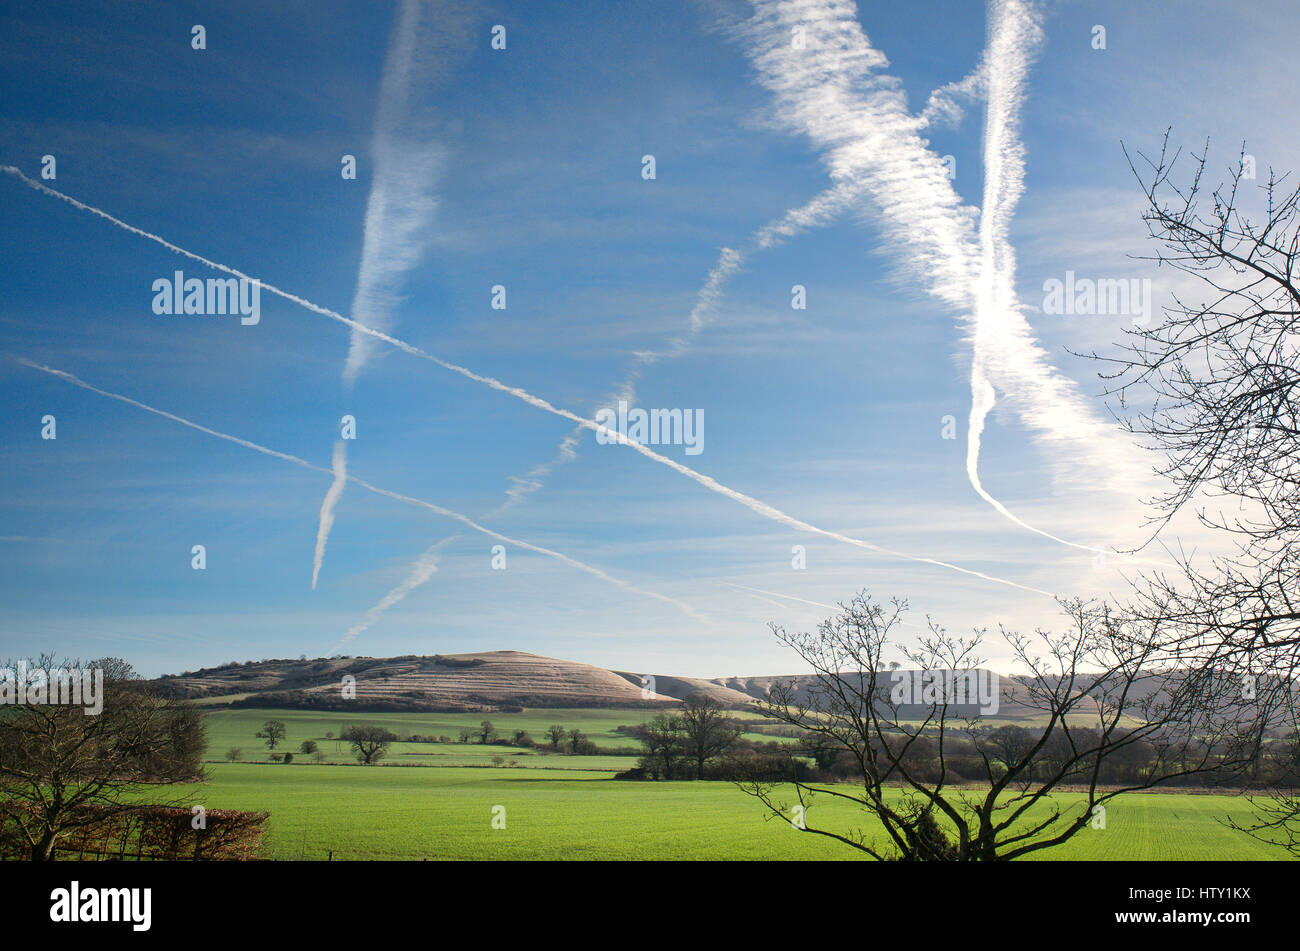 Patterns in the sky formed by high altitude overflying aircraft in Wiltshire UK - Stock Image